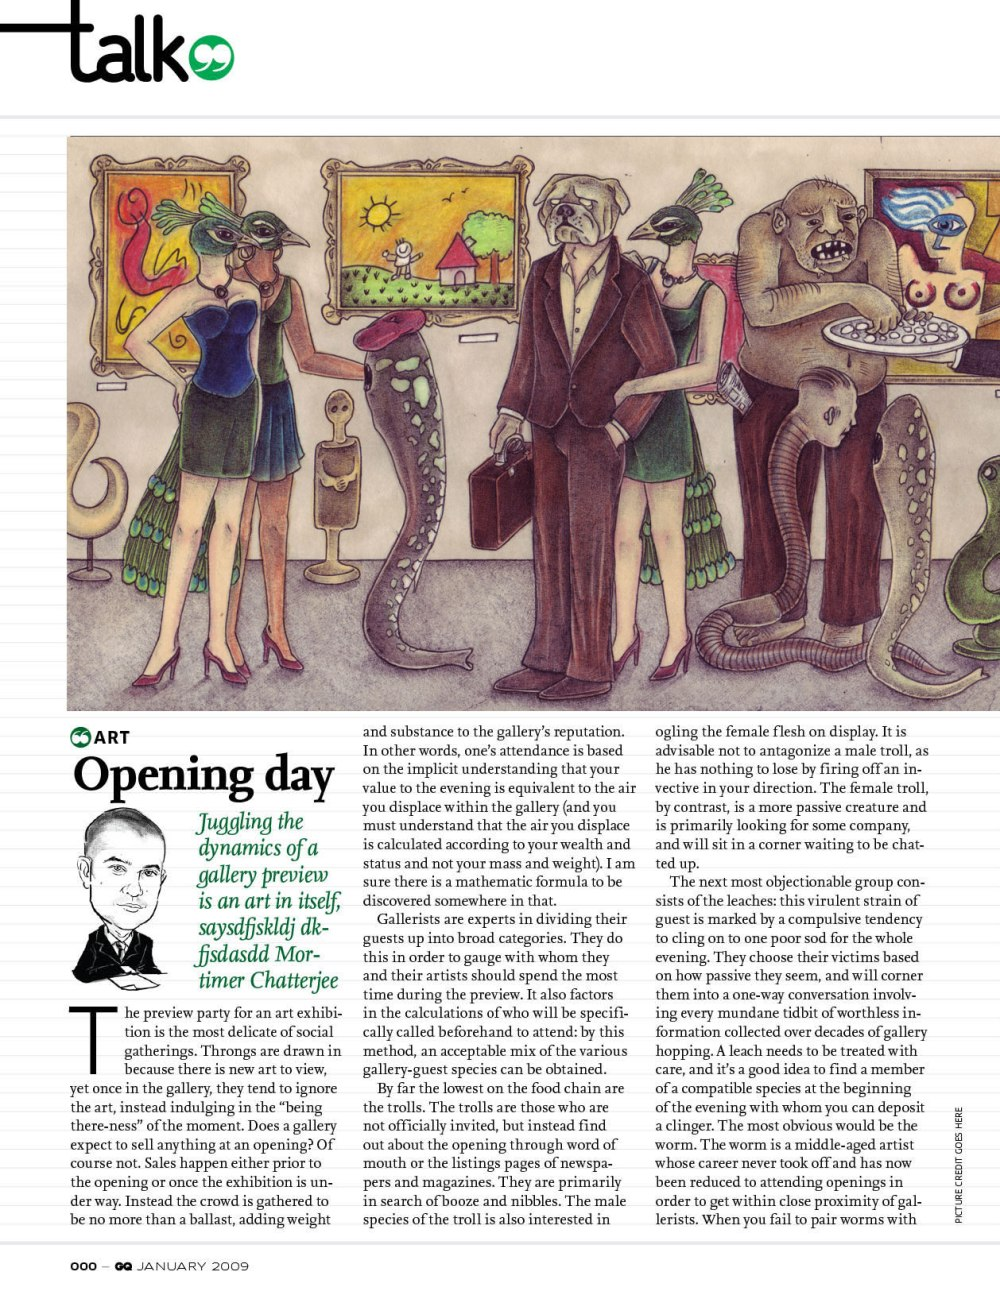 GQ India – Talk Art - Opening Day Article